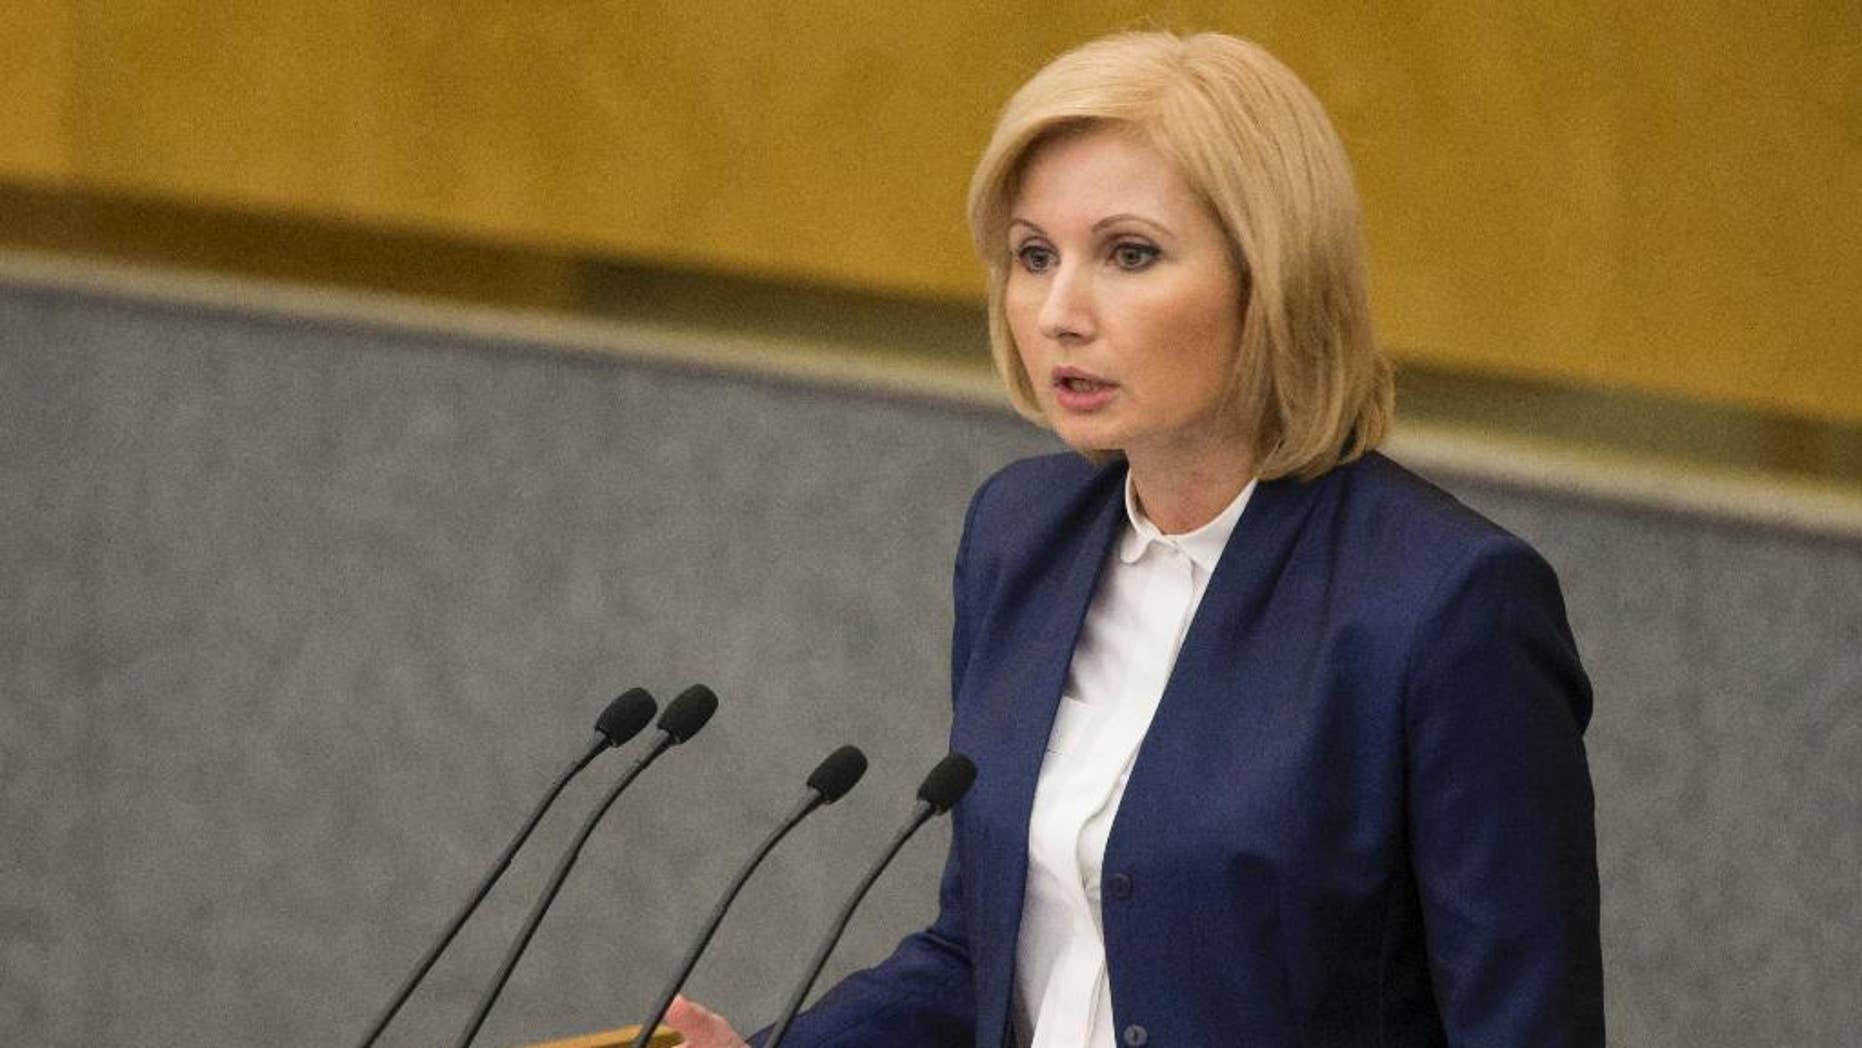 Russian lawmaker Olga Batalina, one of the bill's co-authors.